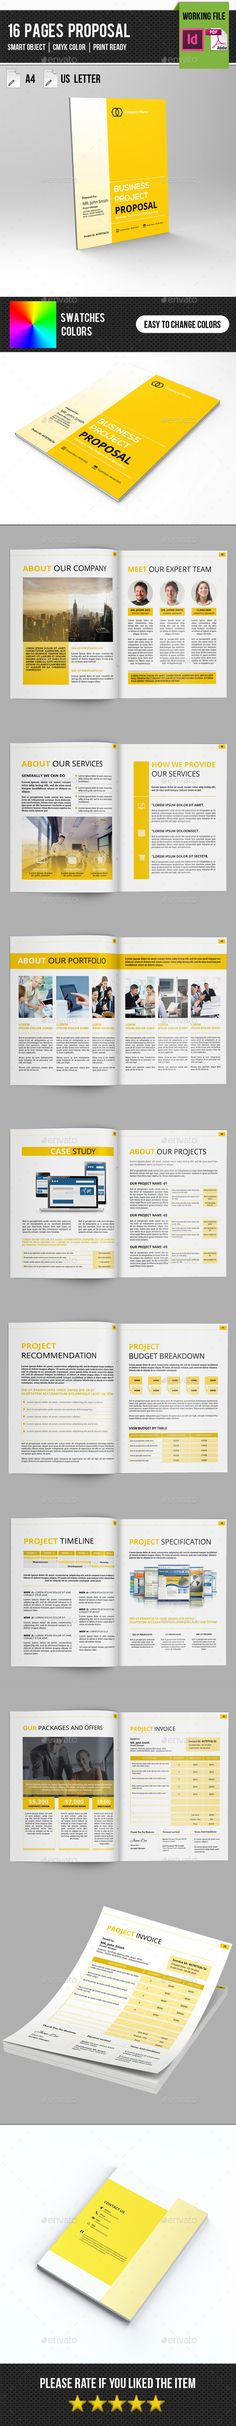 Proposal - product sales proposal template